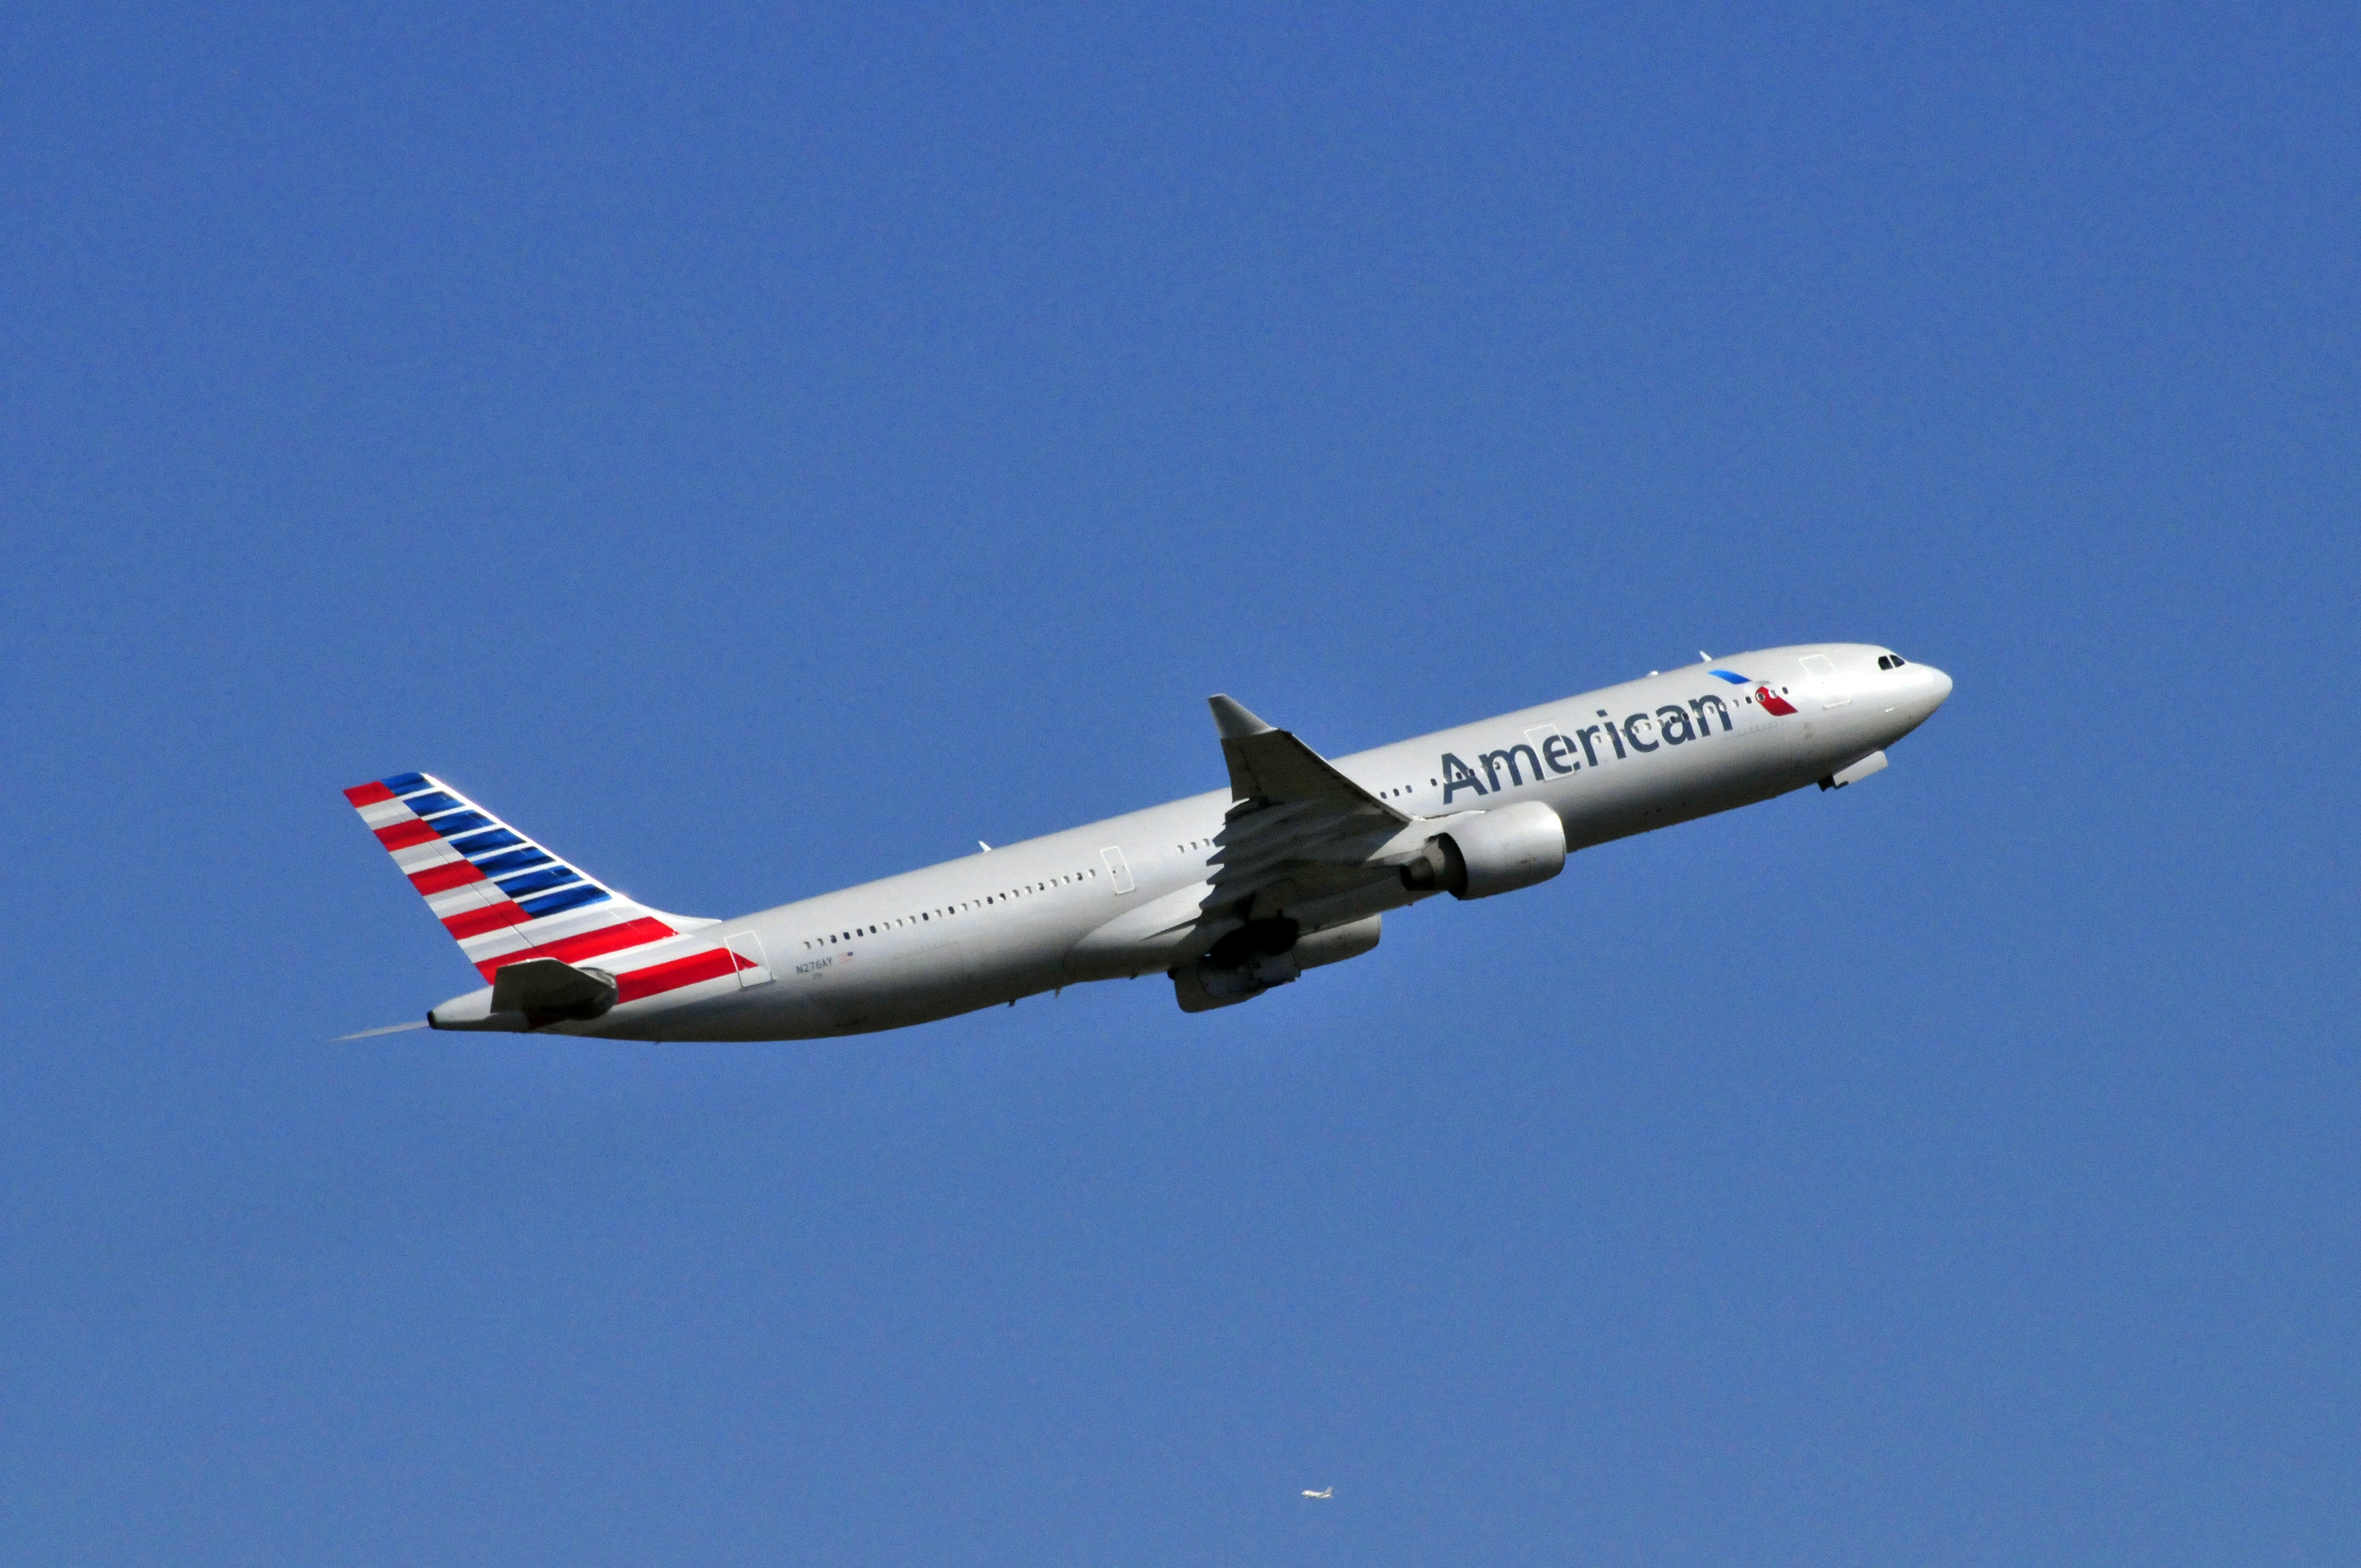 An Airbus A330 belonging to American Airlines.